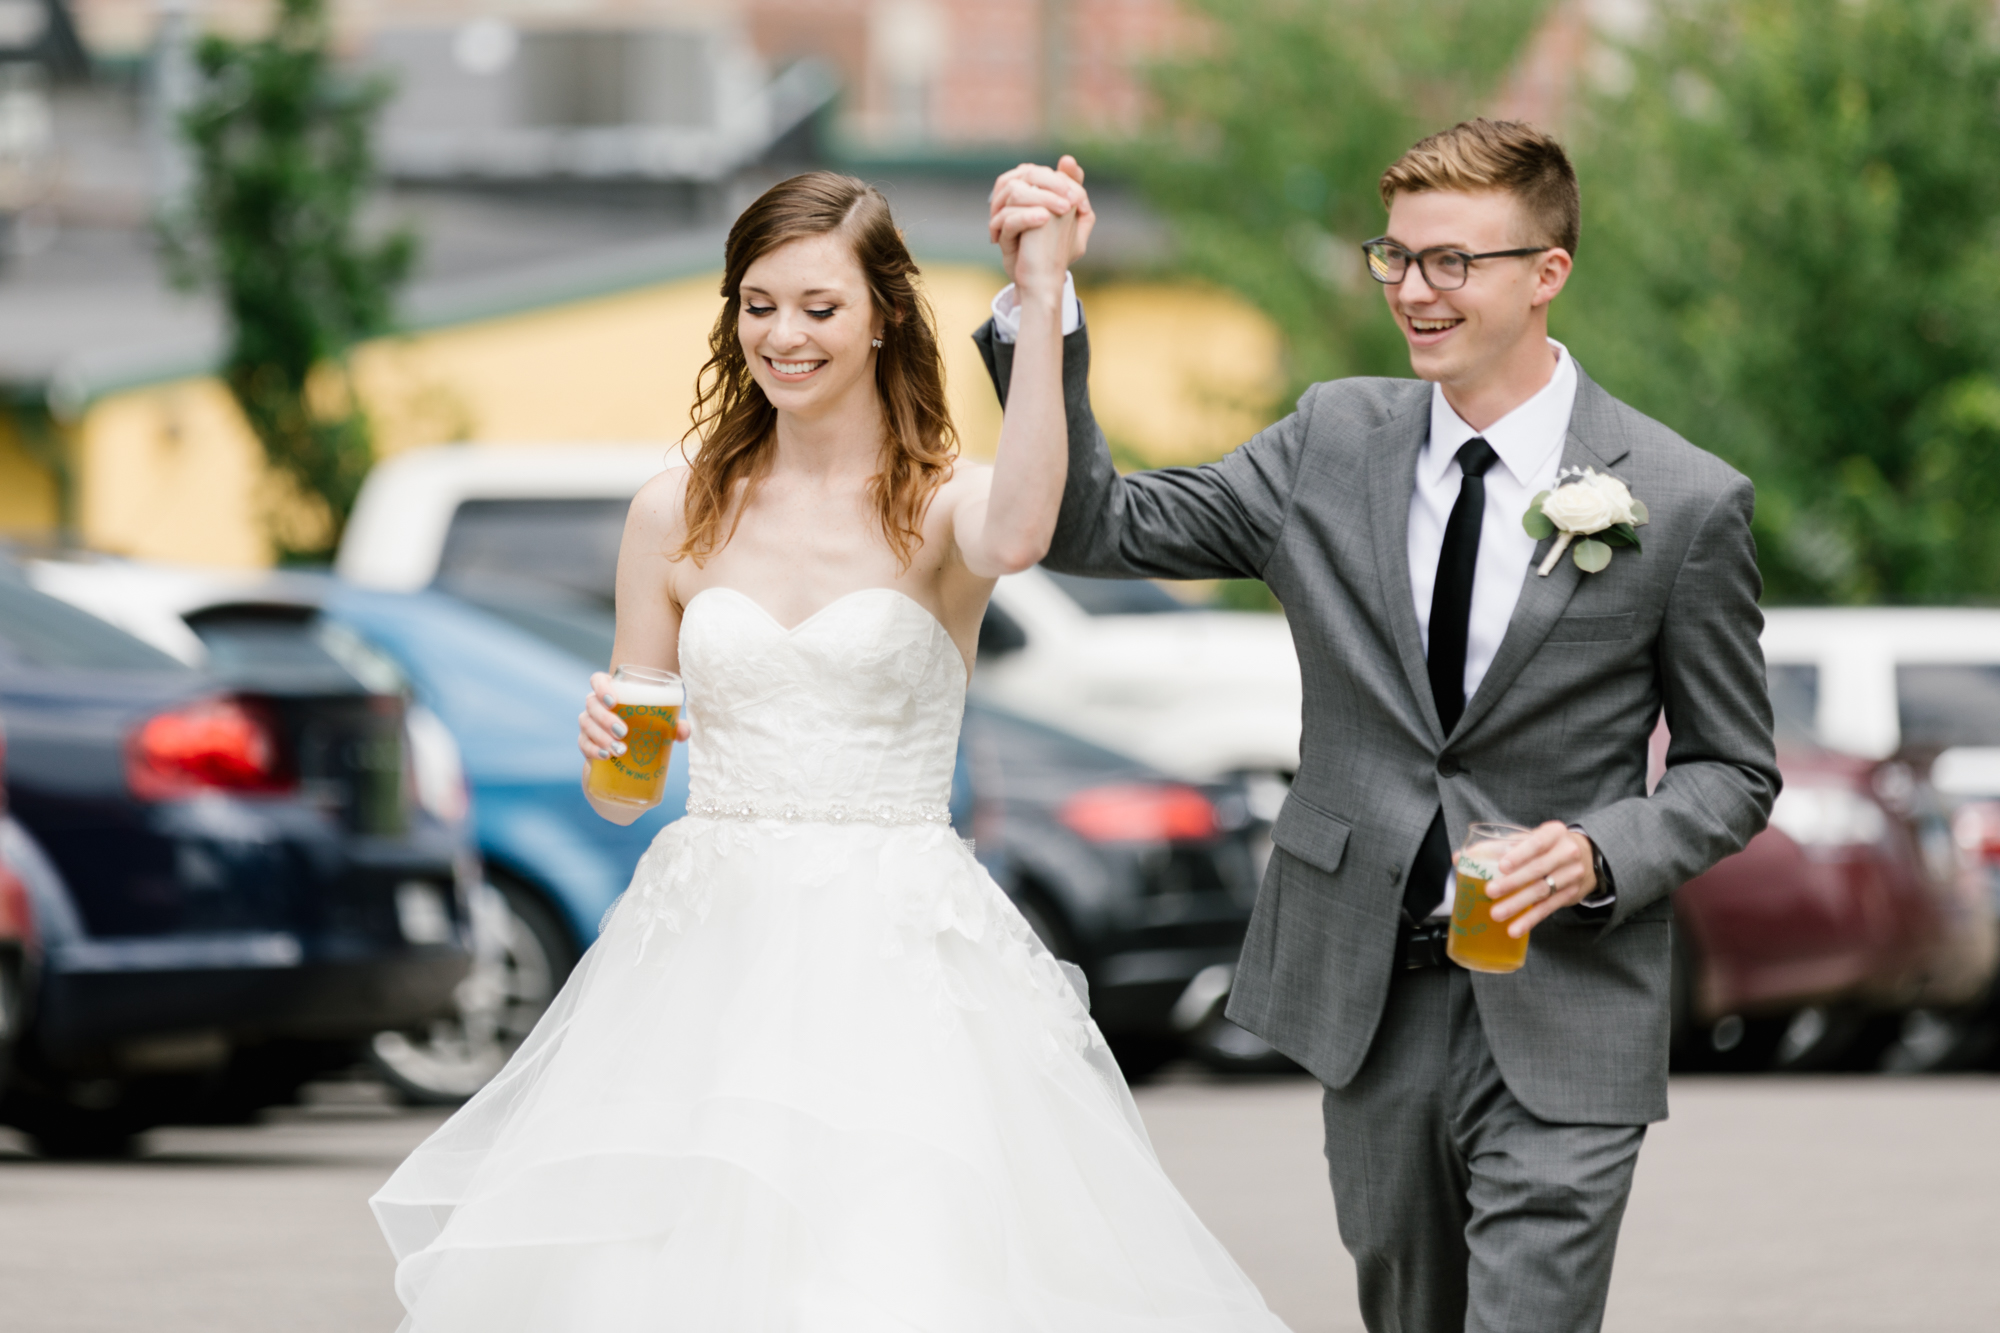 Wedding photography of a couple's wedding reception at Upland Brewing Company in Bloomington, Indiana.